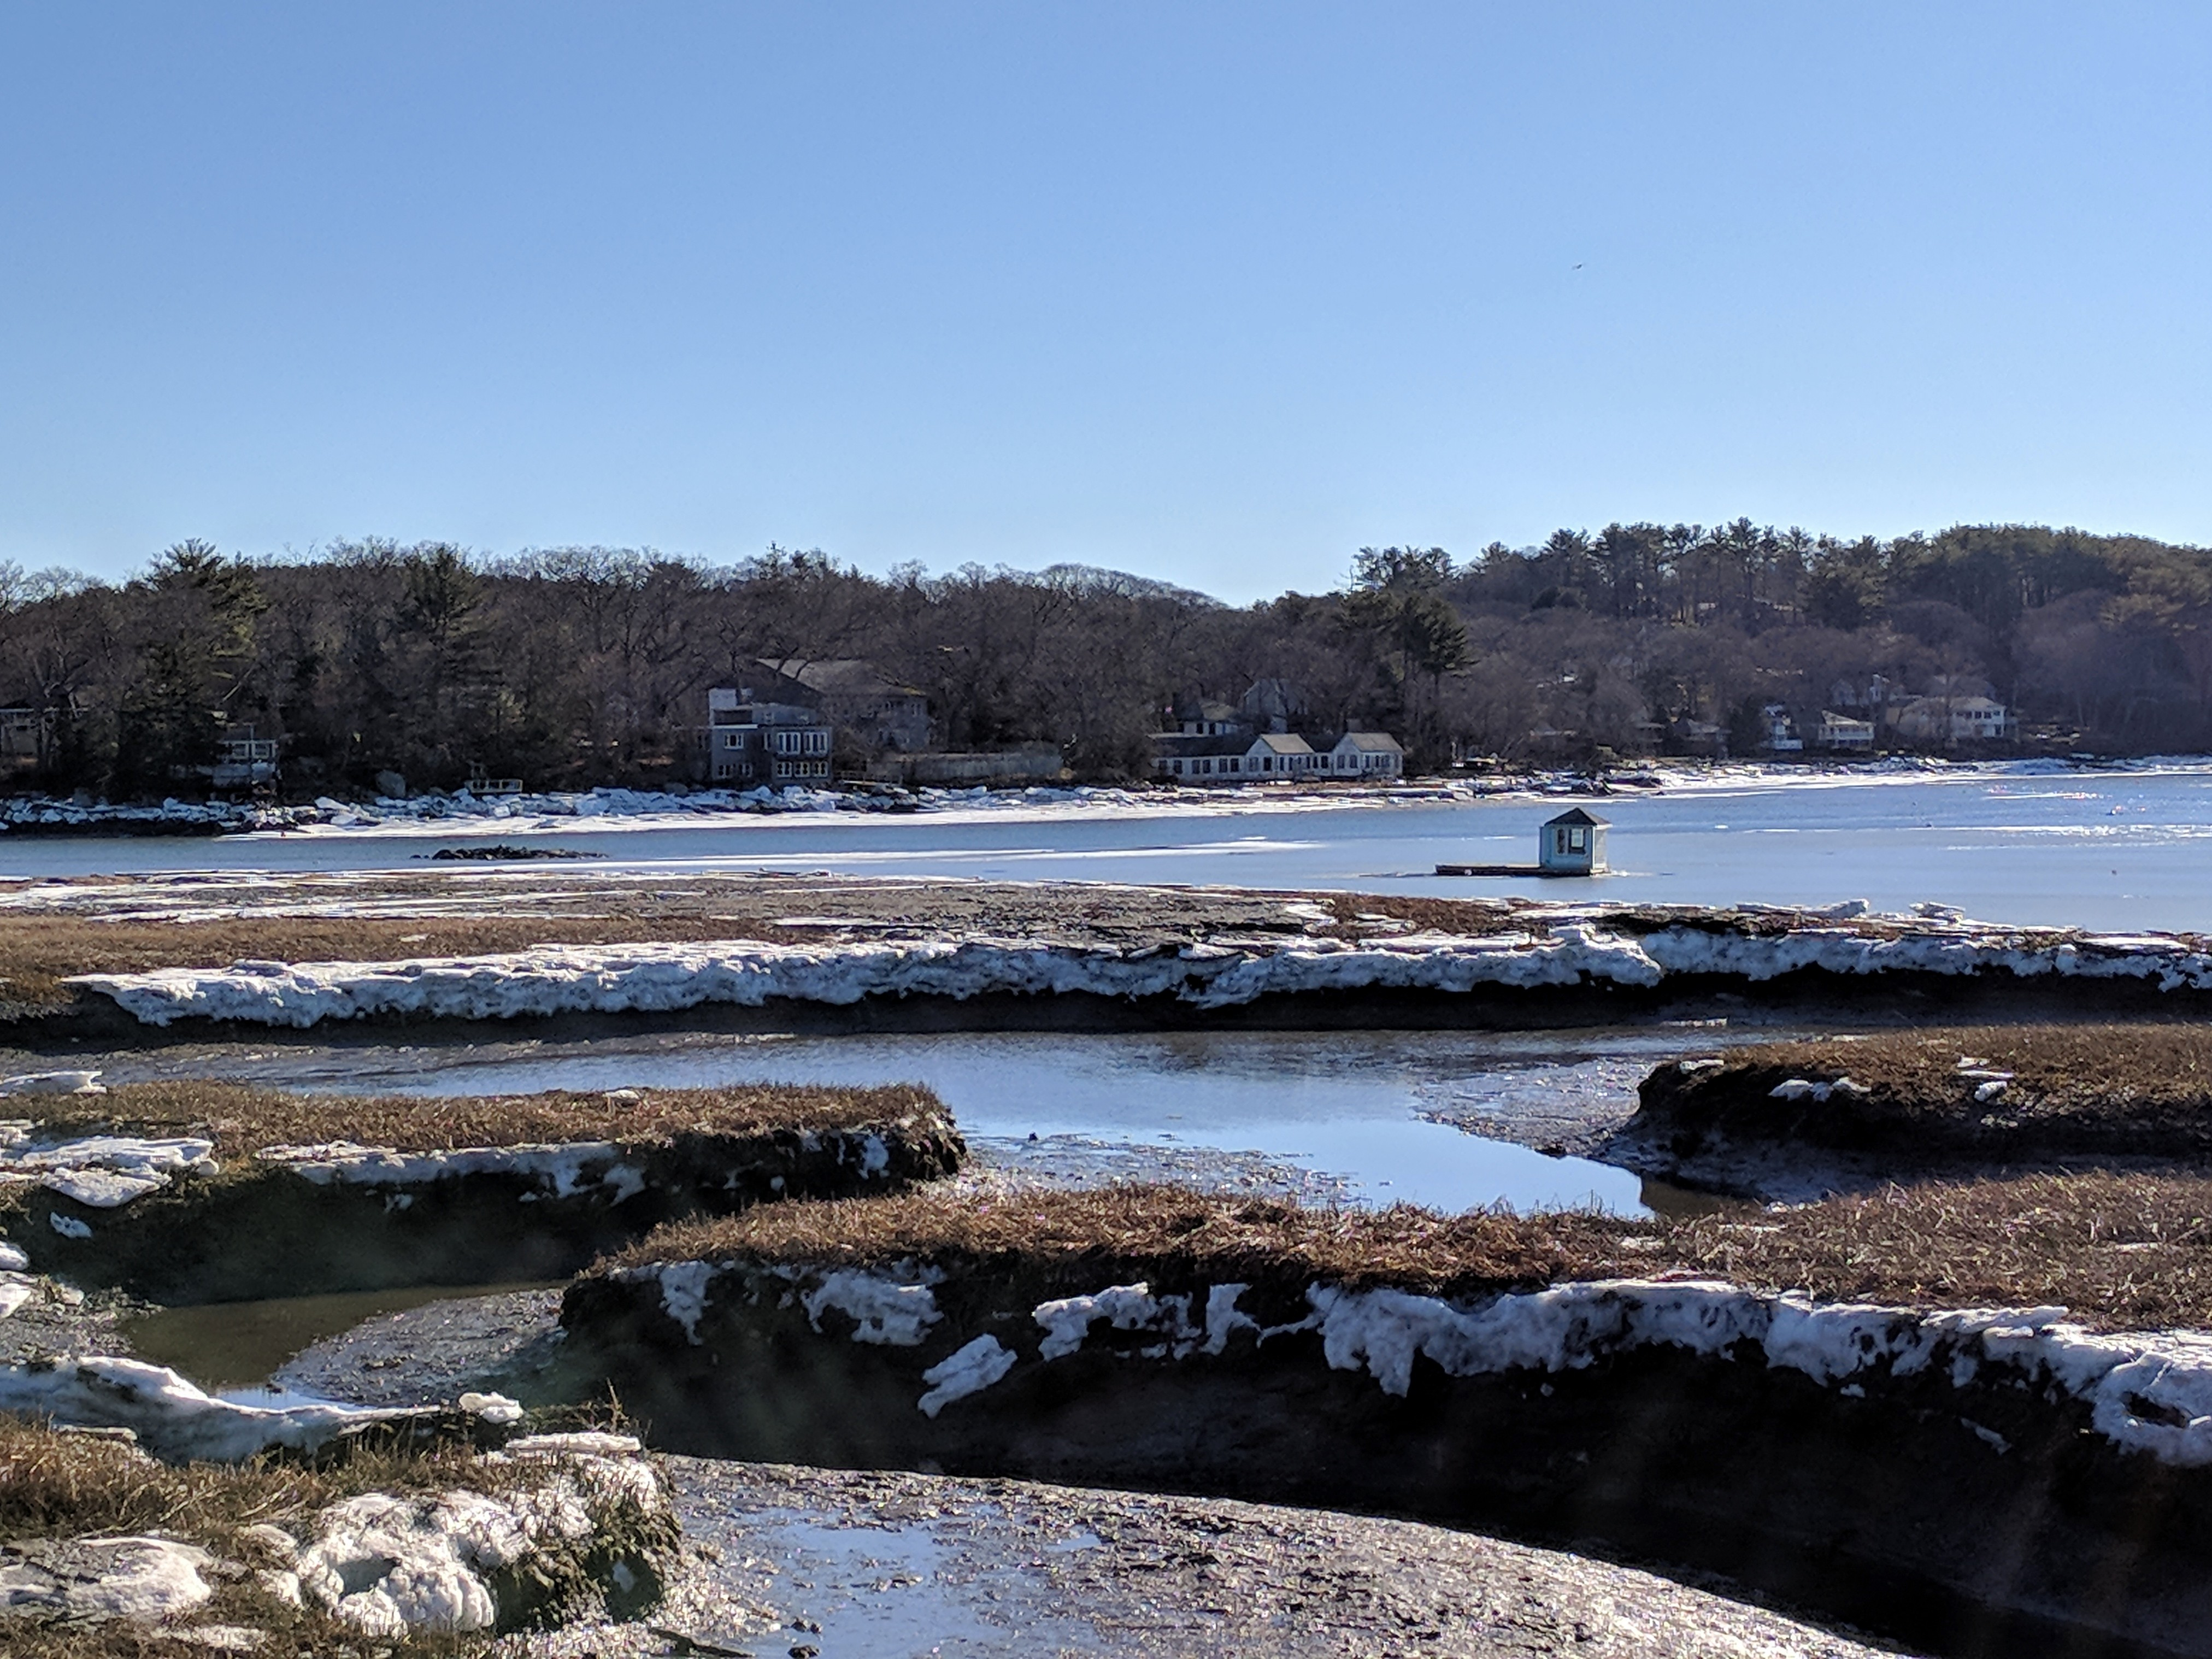 Little house boat in the great salt marsh - Gloucester MA January 13 2018 after thaw from historic winter storm © c ryan__133100